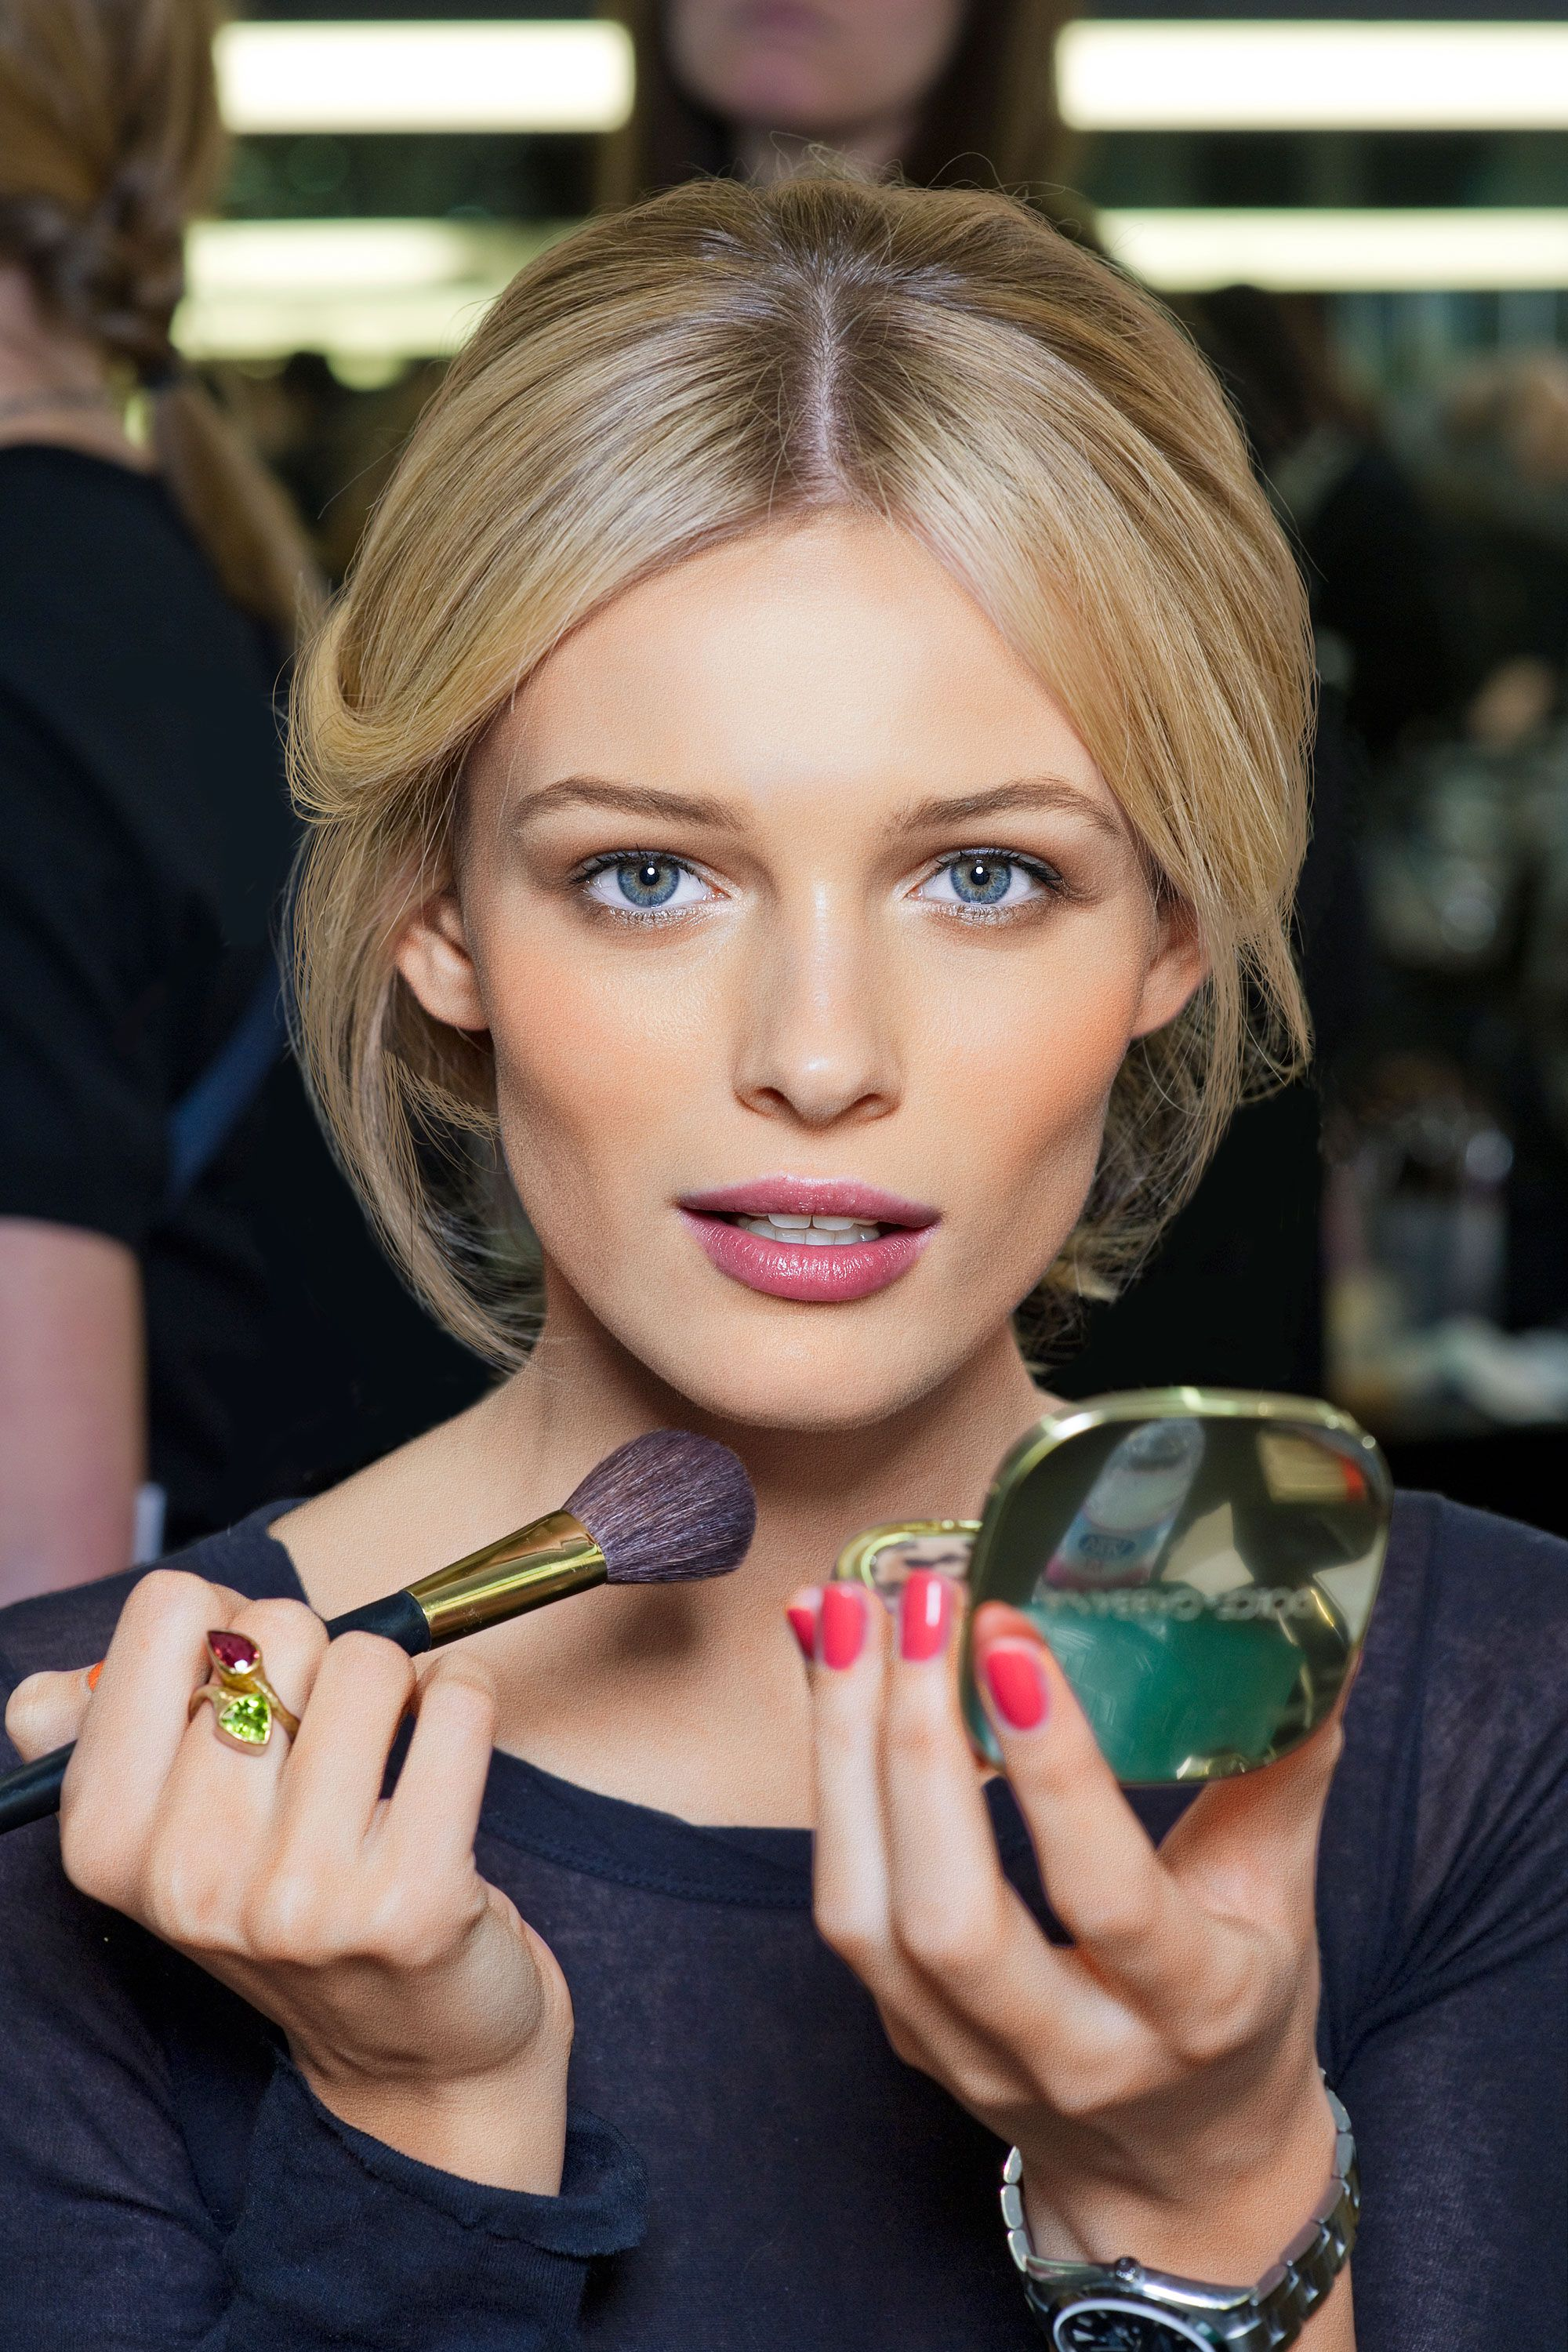 How To Choose The Right Blush For Your Skin Tone